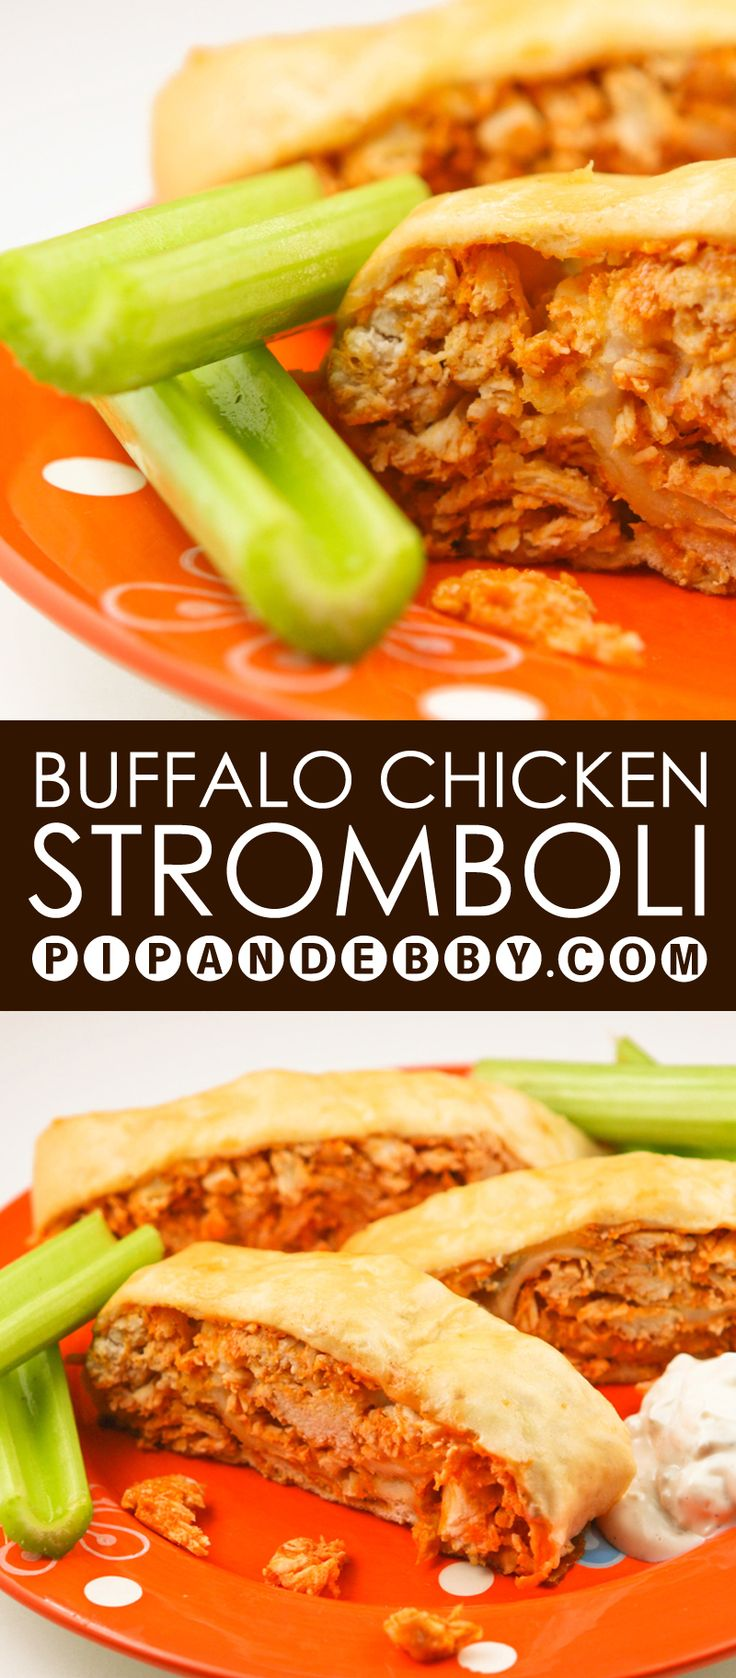 Buffalo Chicken Stromboli | Buffalo chicken wings wrapped up in a ...